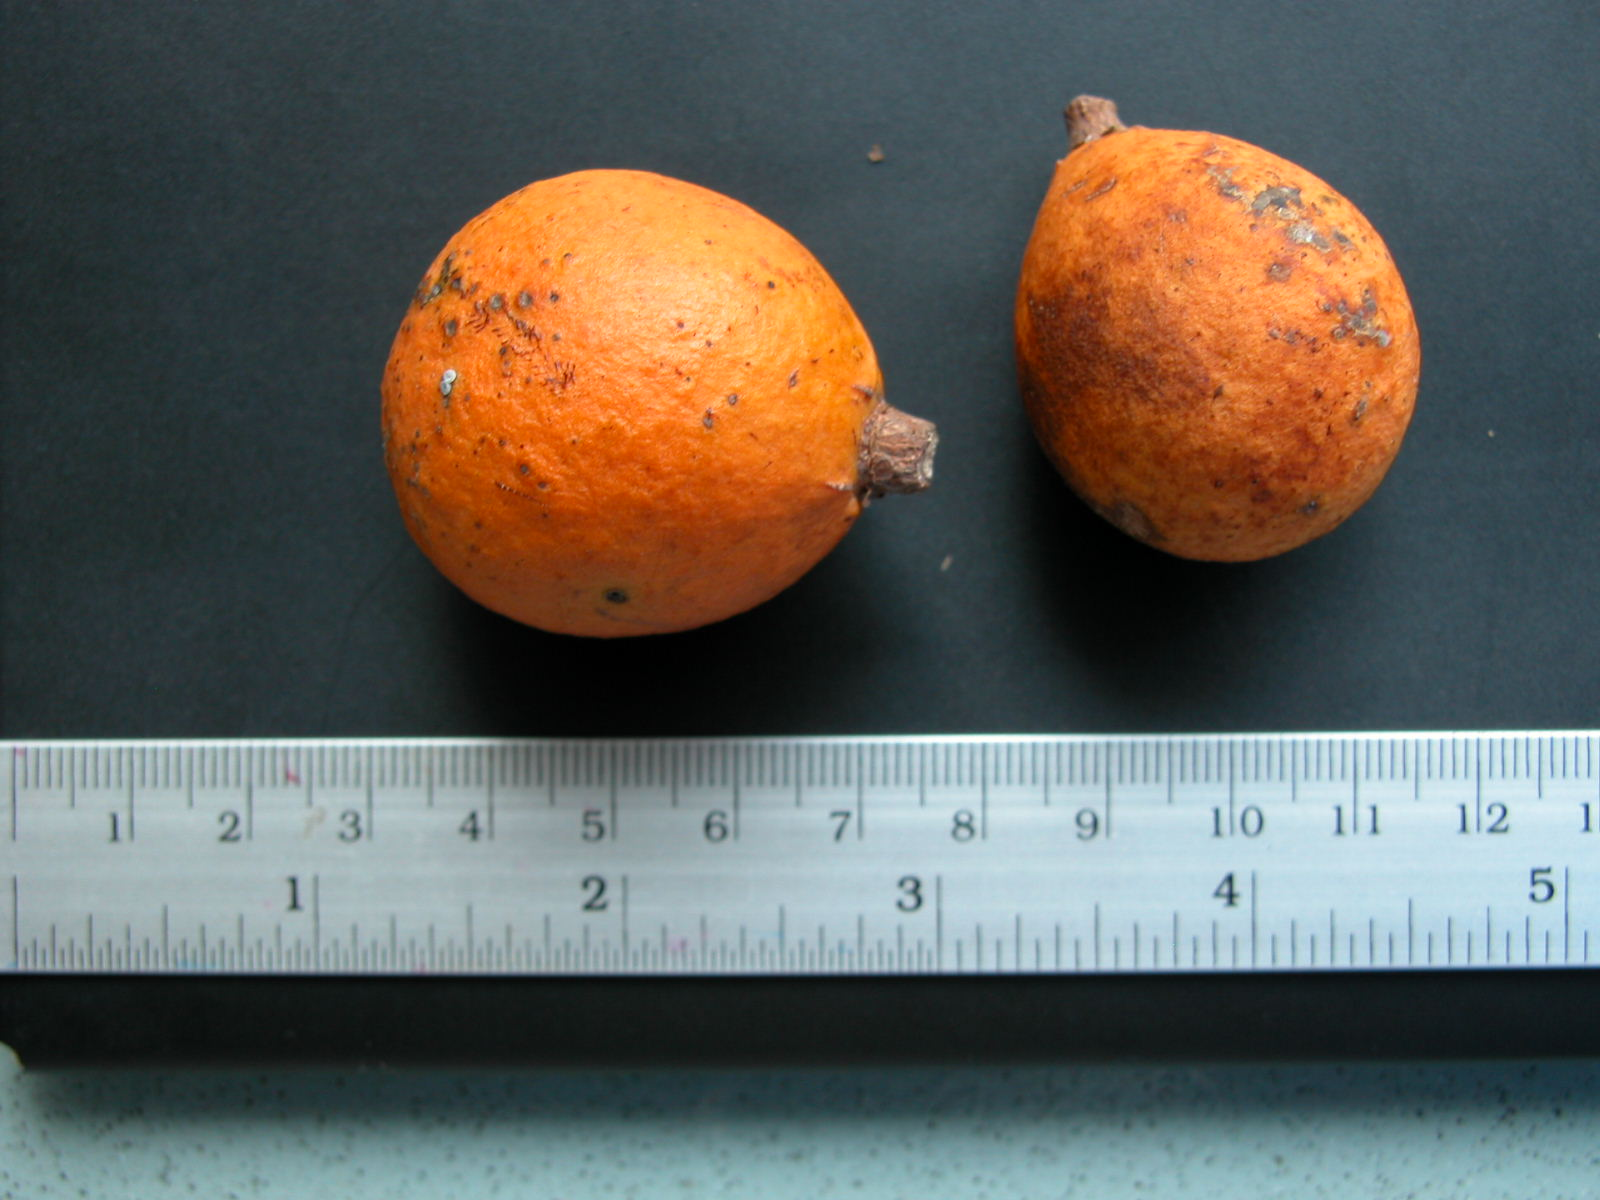 The fruit of the liana Salacia chinensis. Photo by Chanpen Saralamba